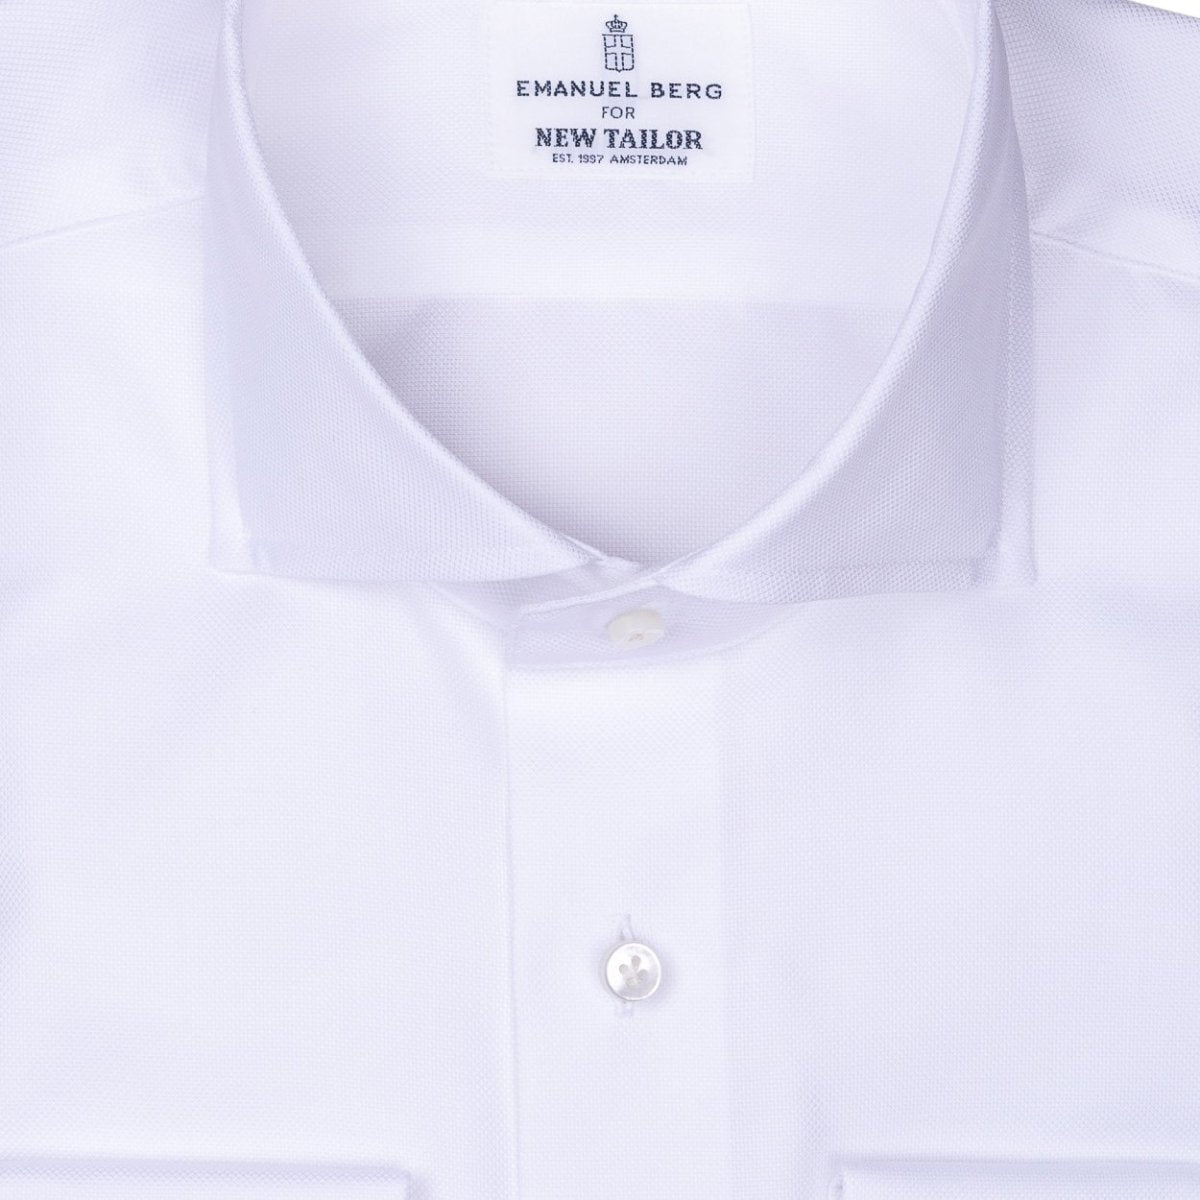 Maatshirt, White Plain Twill (Business Wear) - NEW TAILOR Webshop